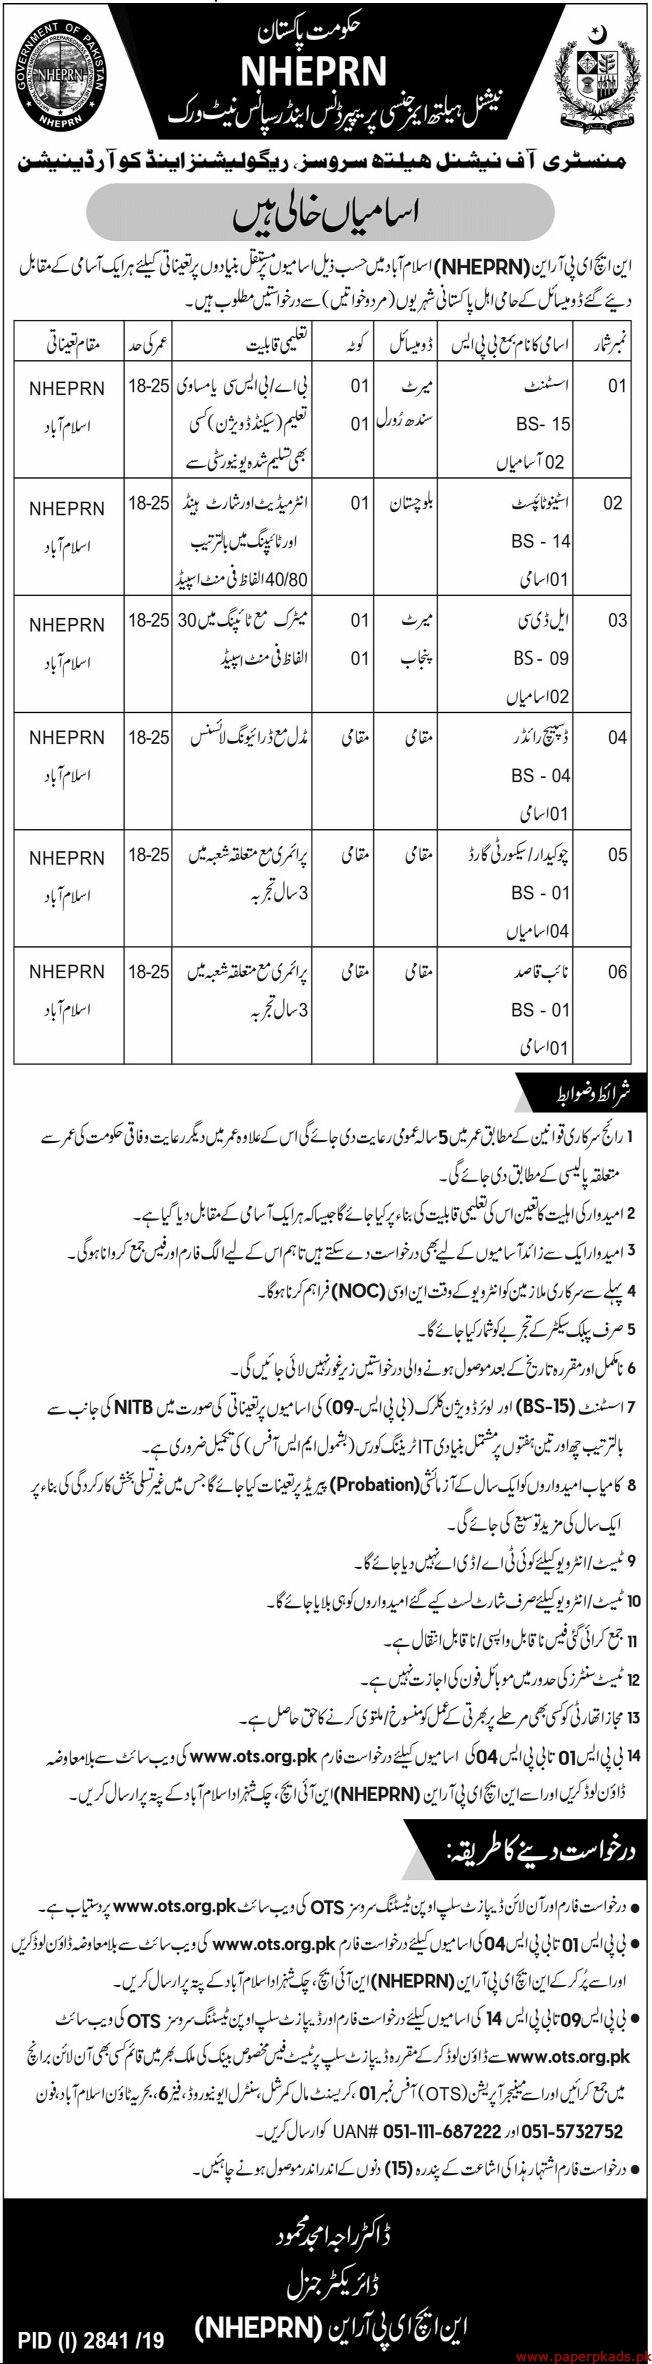 Government of Pakistan NHEPRM Jobs 2019 Latest